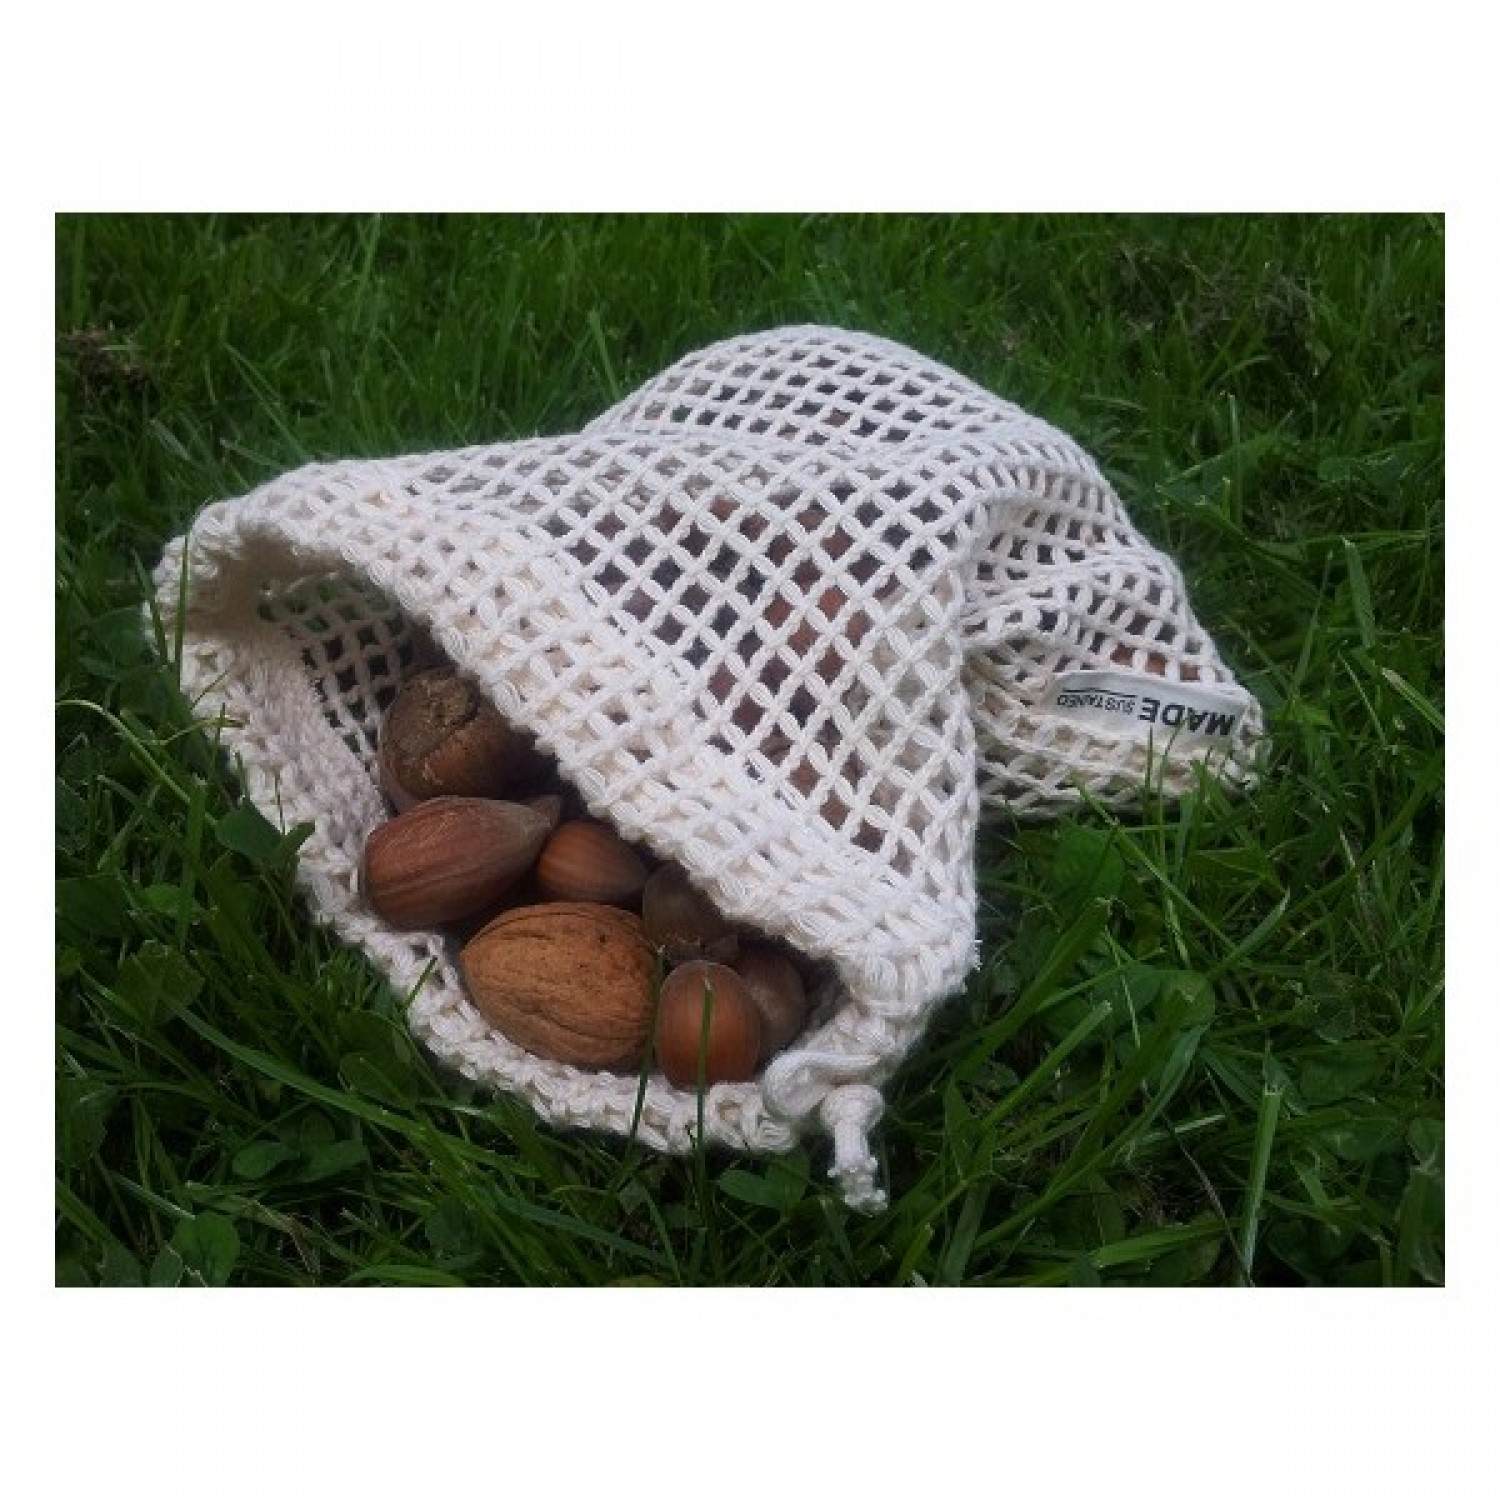 Re-Sack Net Small – Fruit net of organic cotton